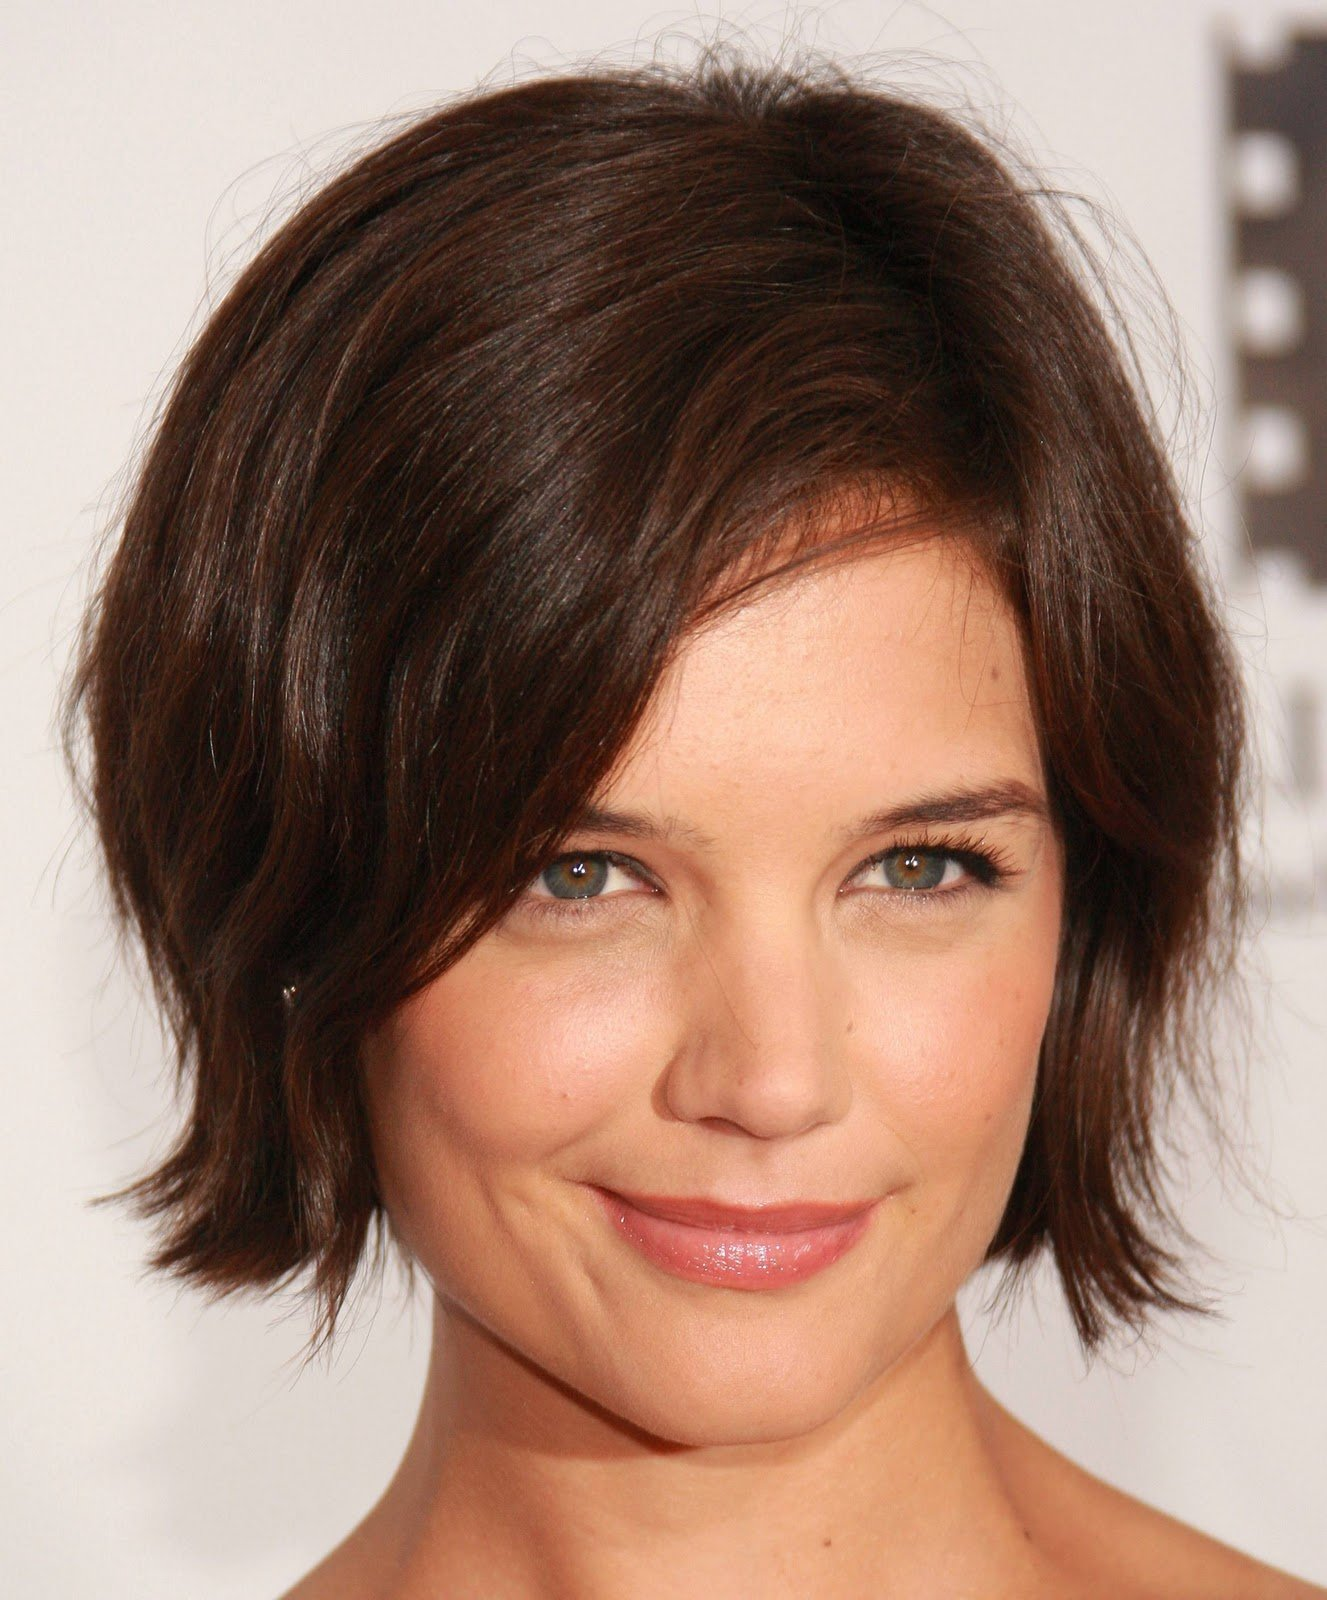 Free Hairstyles For Celebrity Celebrity Hairstyles Katie Holmes Wallpaper